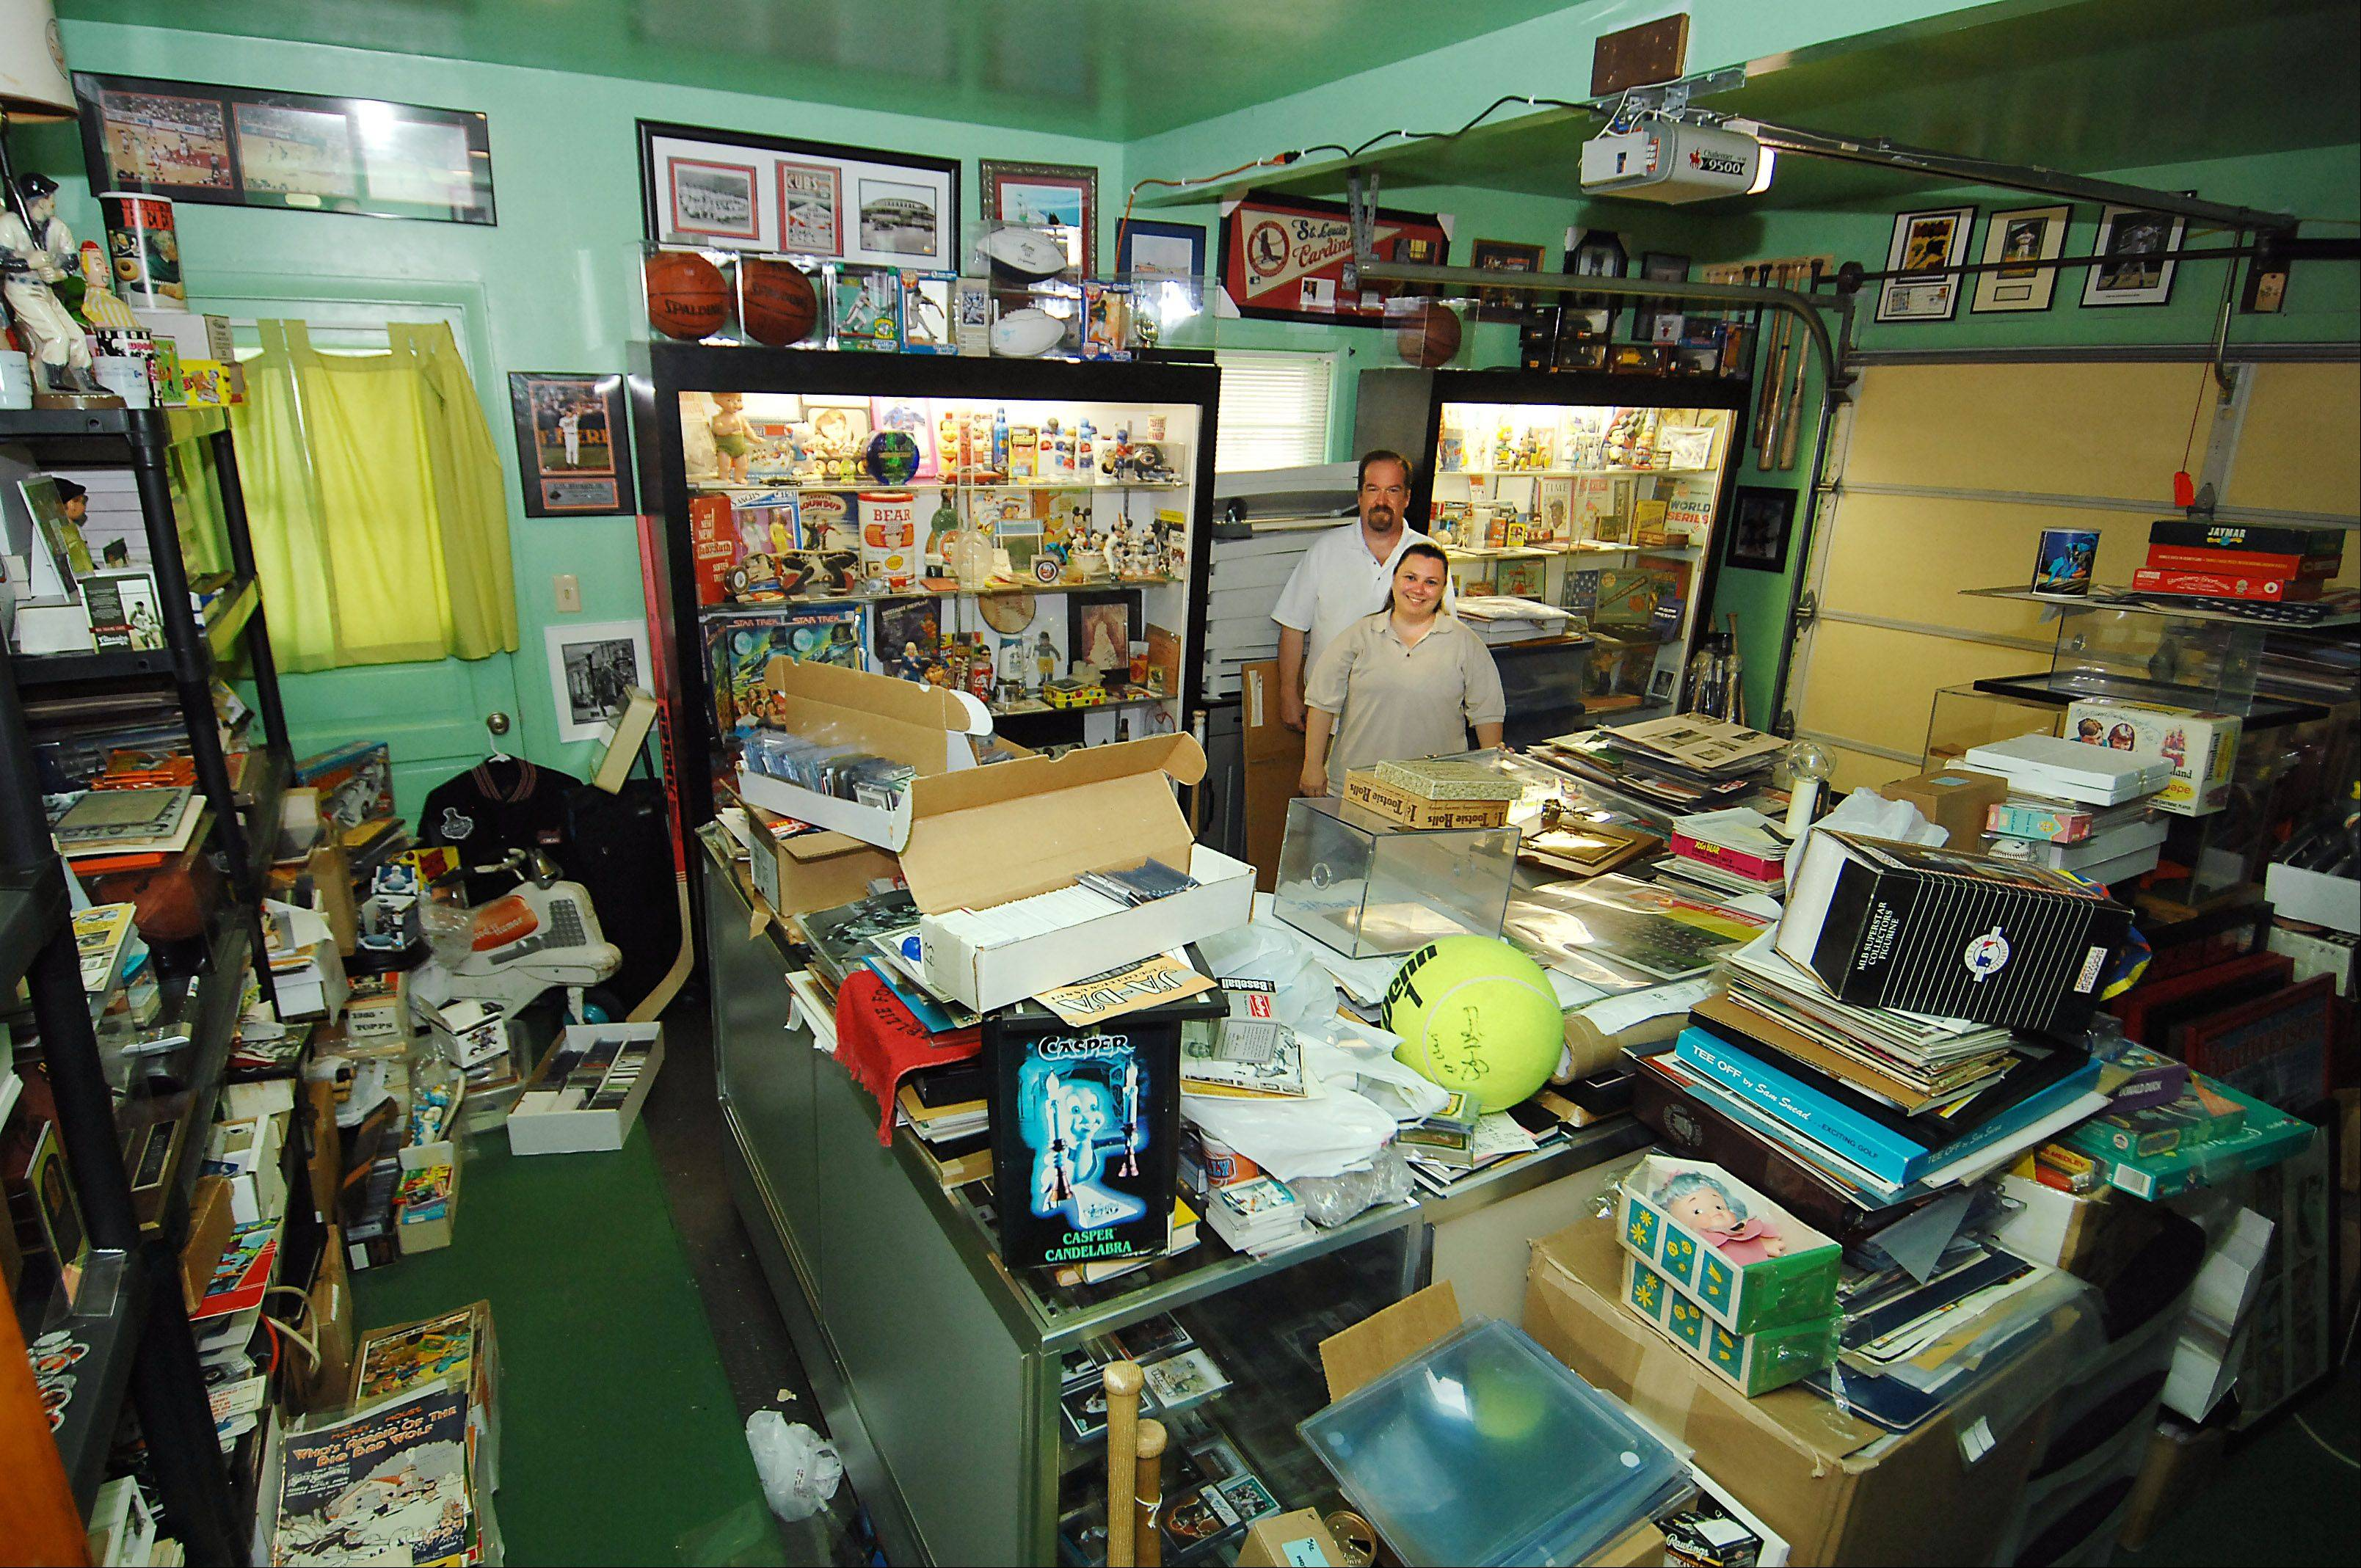 John and Debby Arcand estimate 4,500 square feet of their 5,400-square-foot home is filled with memorabilia and collectibles. The two have been collecting all sorts of items for close to 30 years.